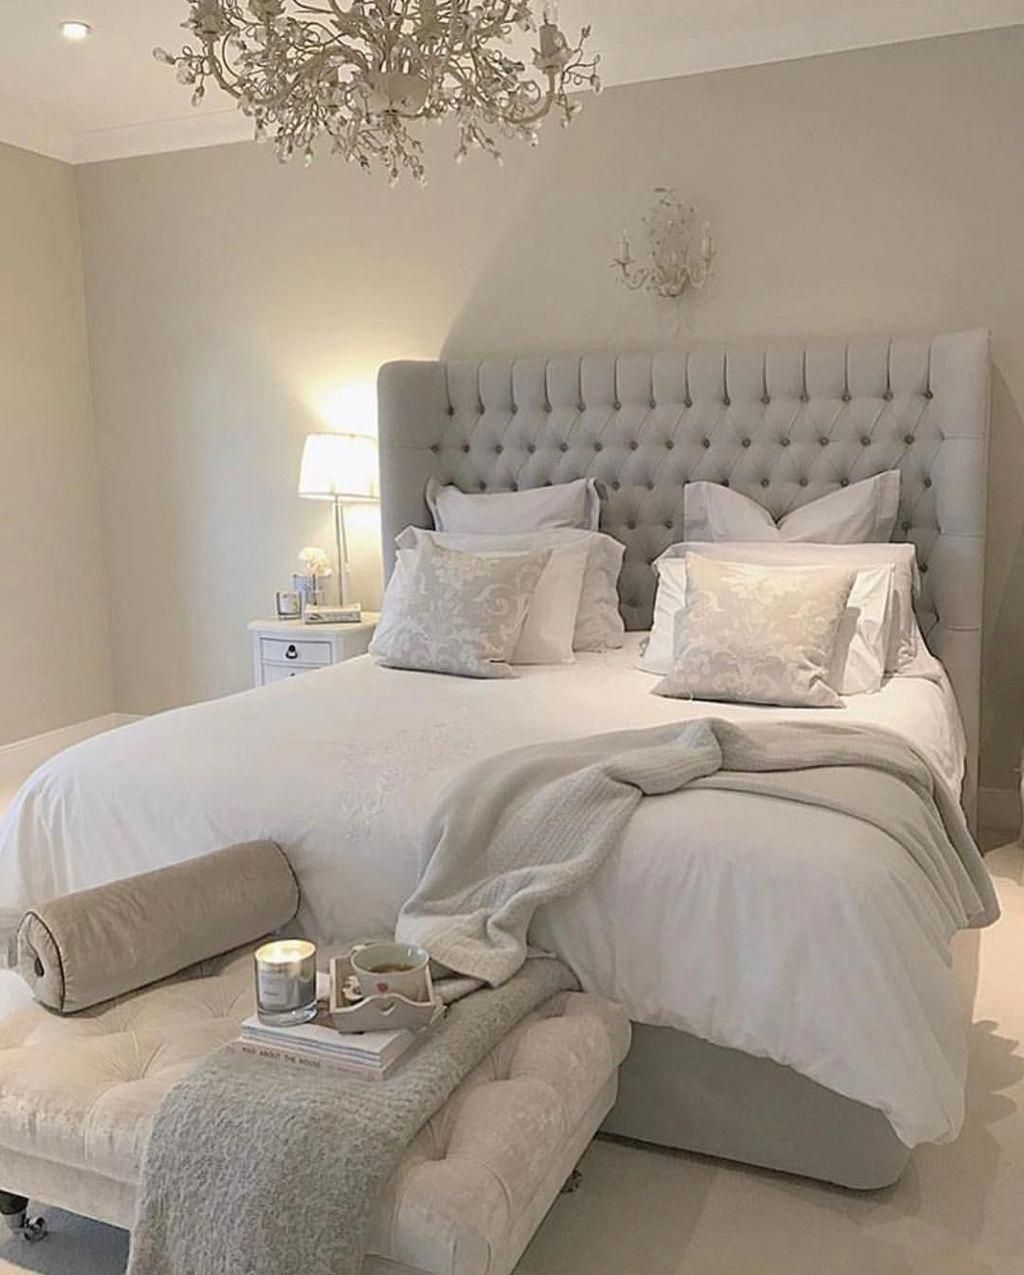 Budget Bedroom Decor: Cool 47 Stylish Master Bedroom Design Ideas Budget